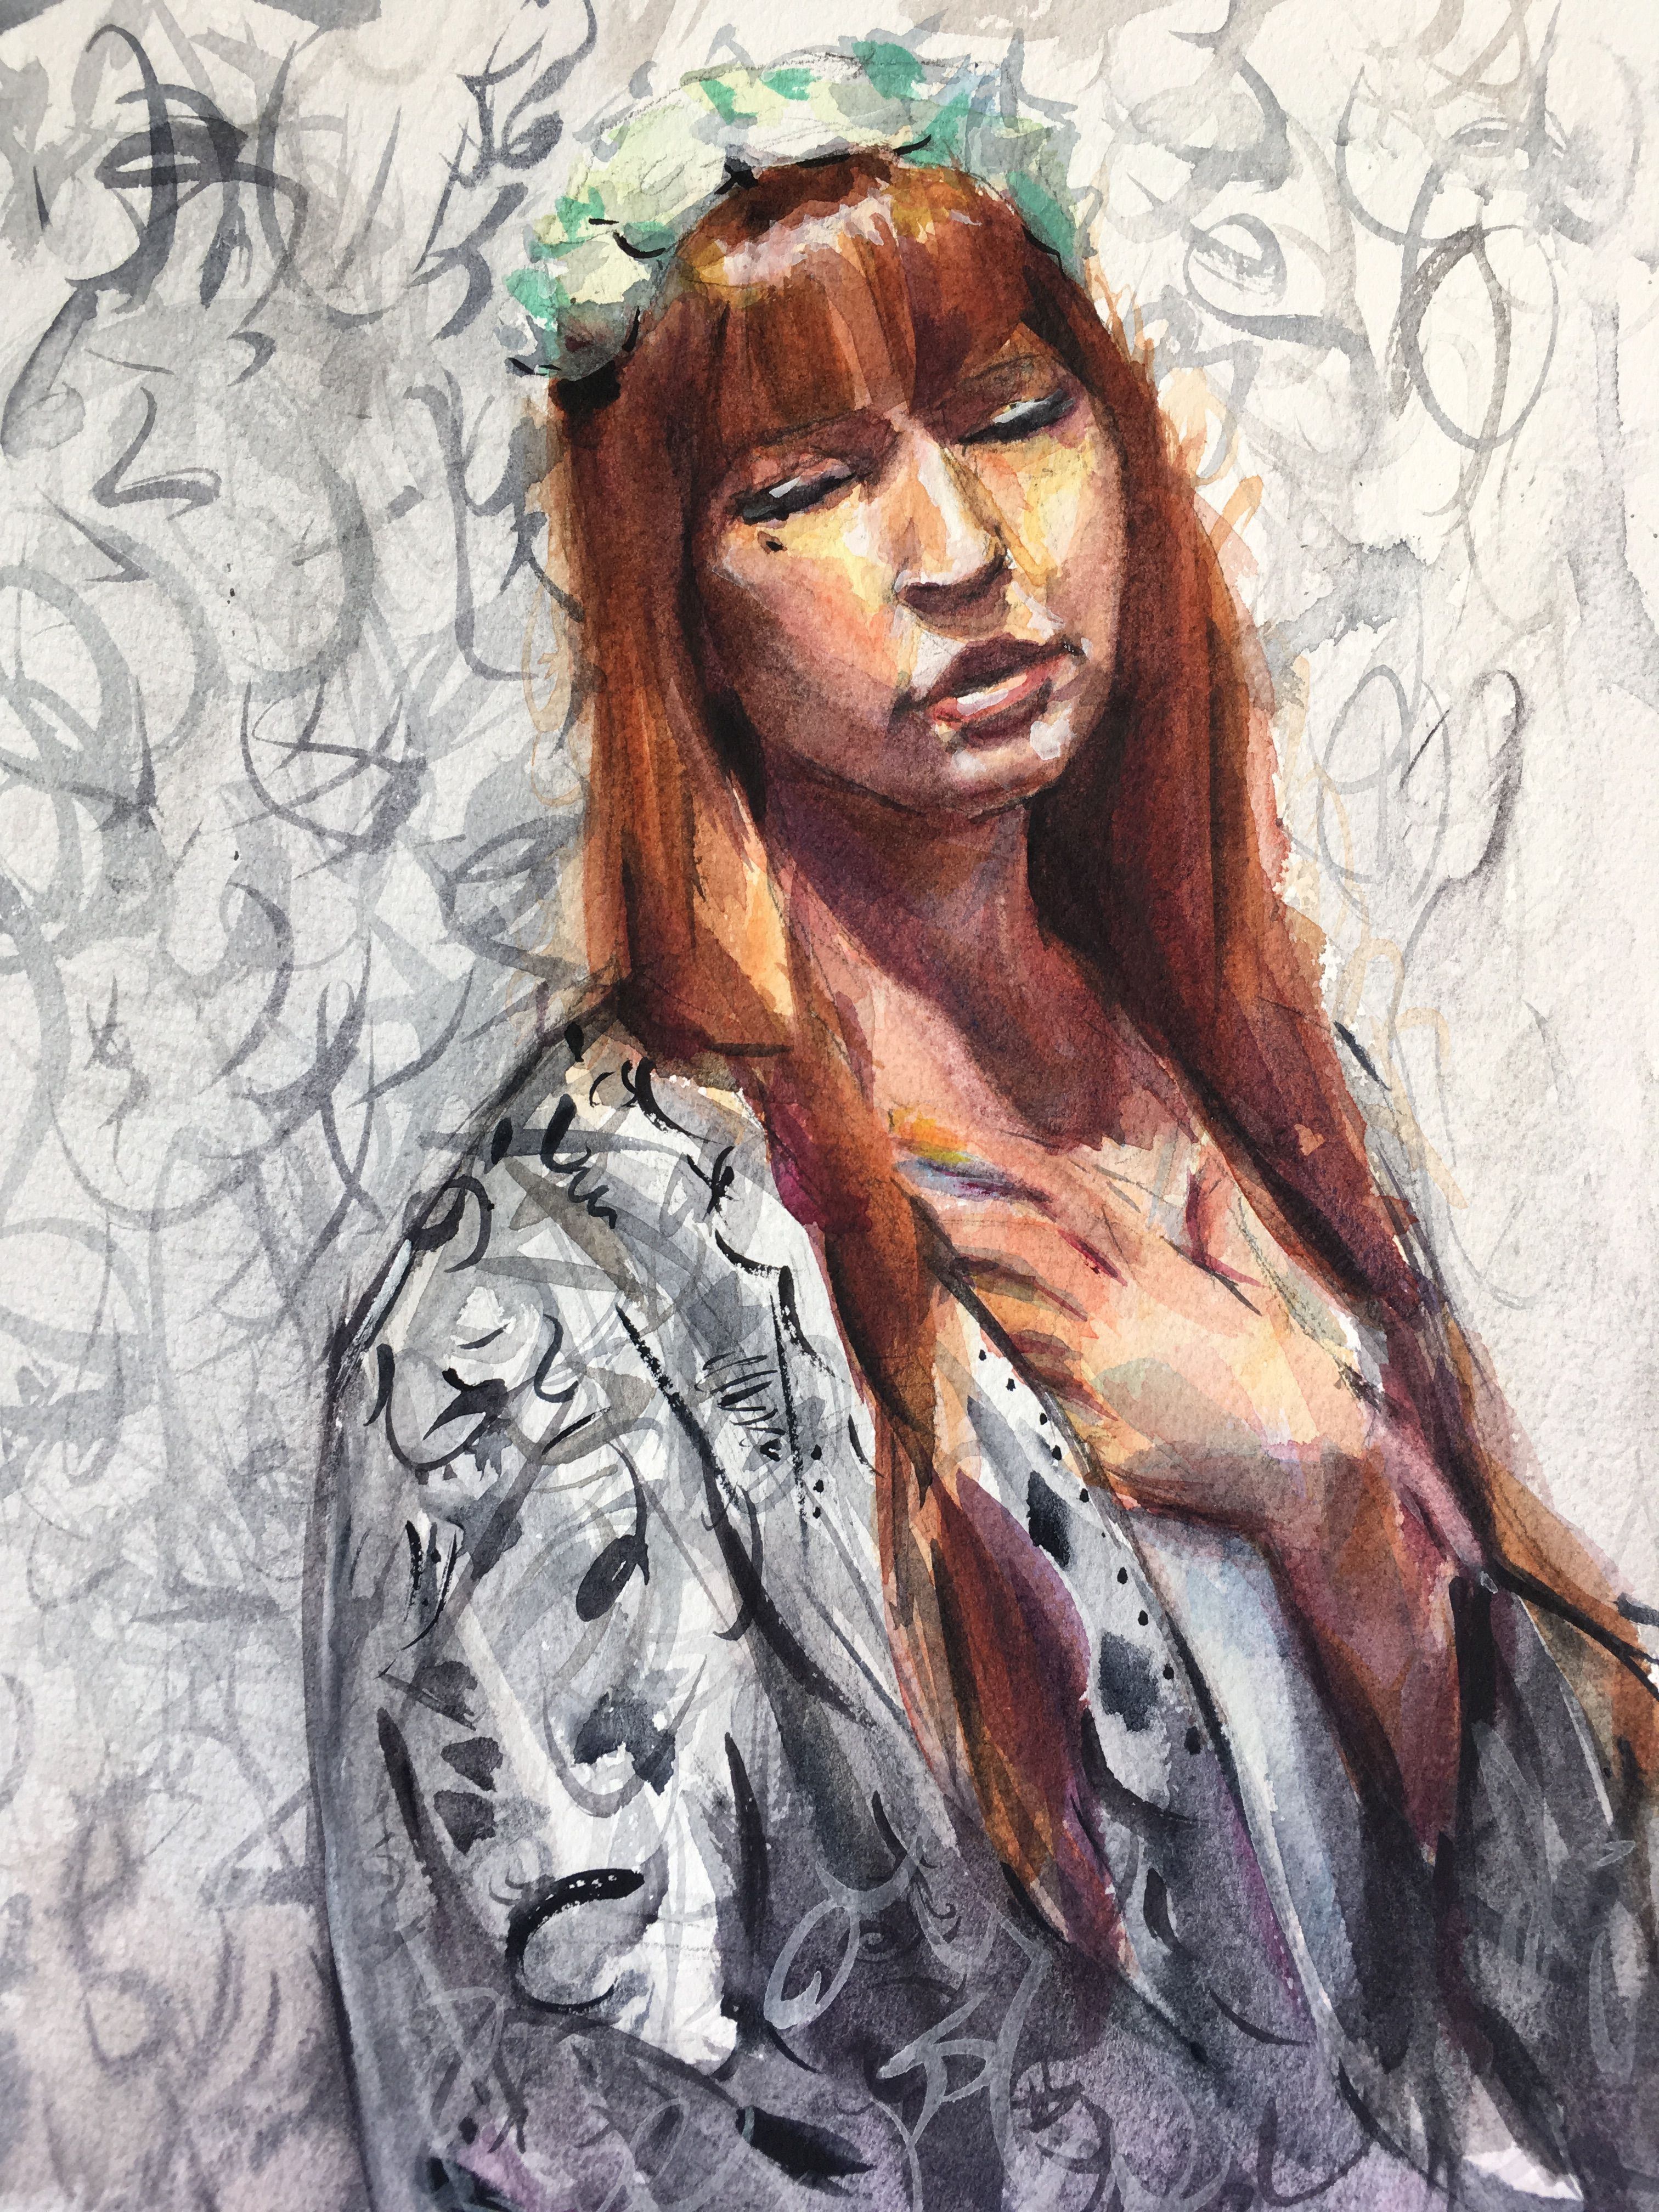 Painted during open studio at scottsdale artists school